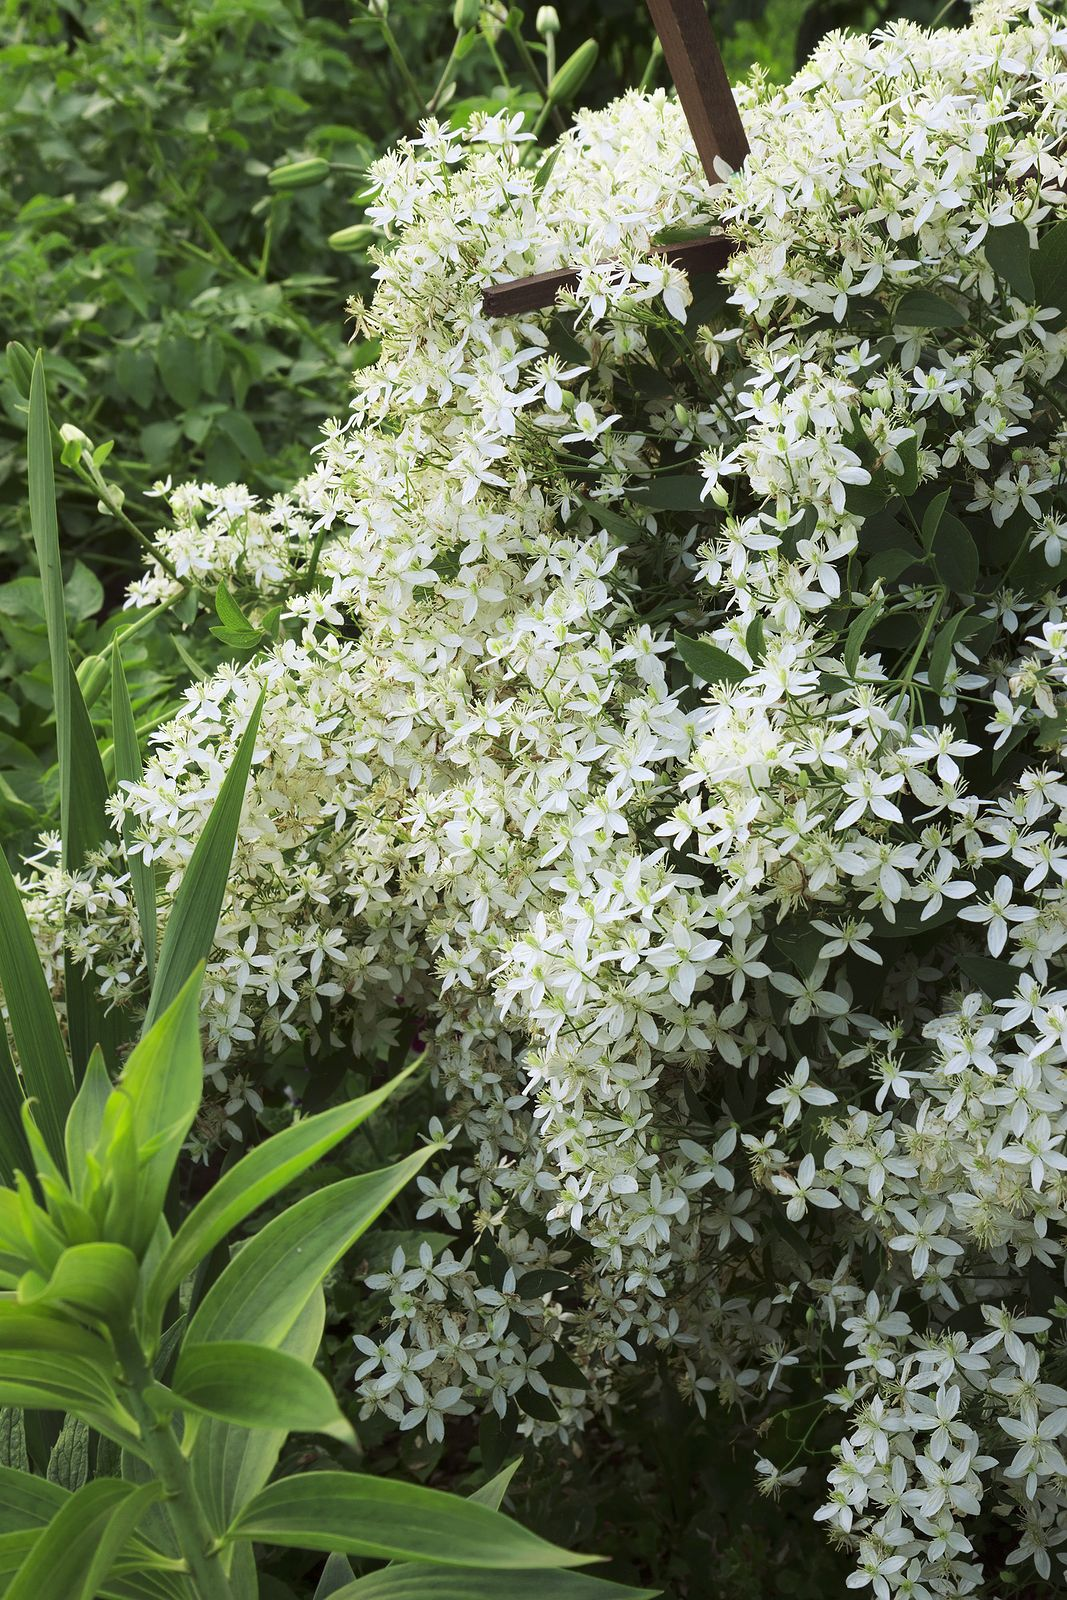 Flowers you can plant in the fall - Beautiful White Flowers Summer And Early Fall Clematis Terniflora 1 Of 5 Fastest Growing Twining